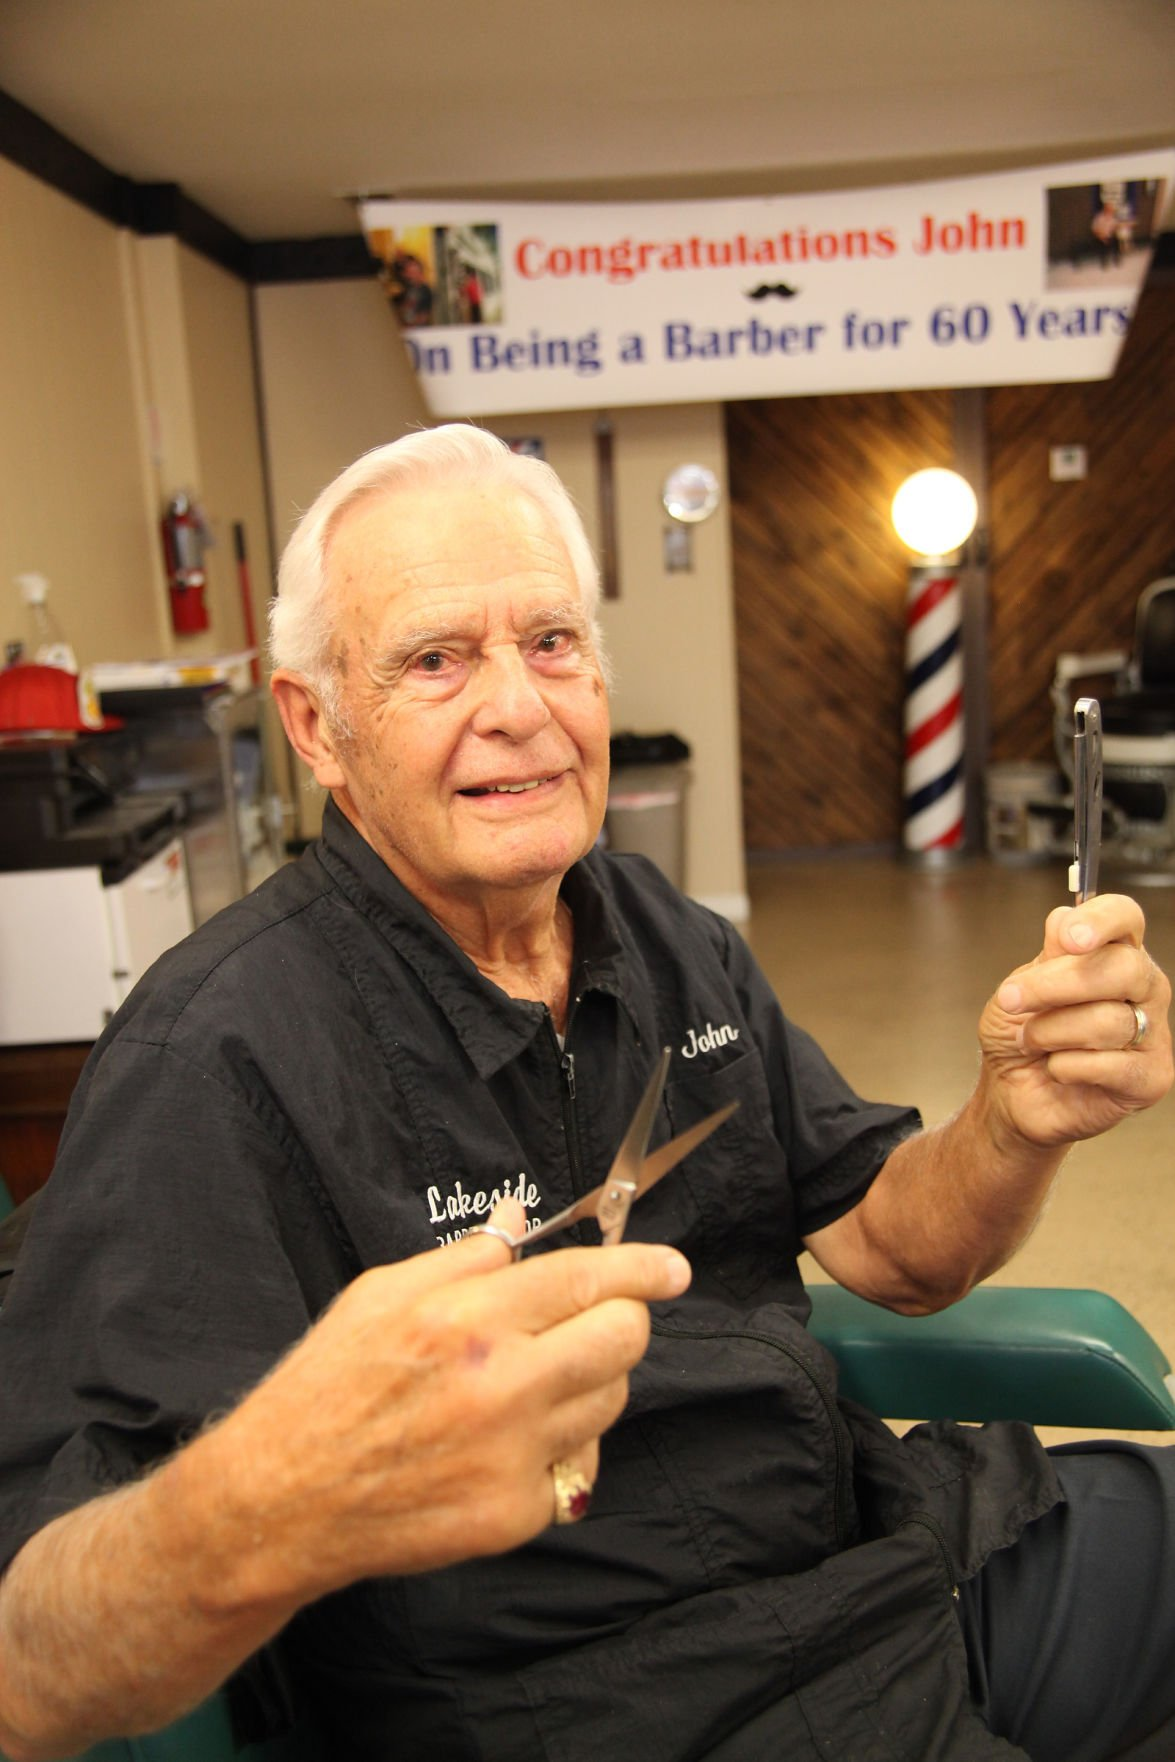 From flat tops to comb overs, John Pfeifer has seen it all